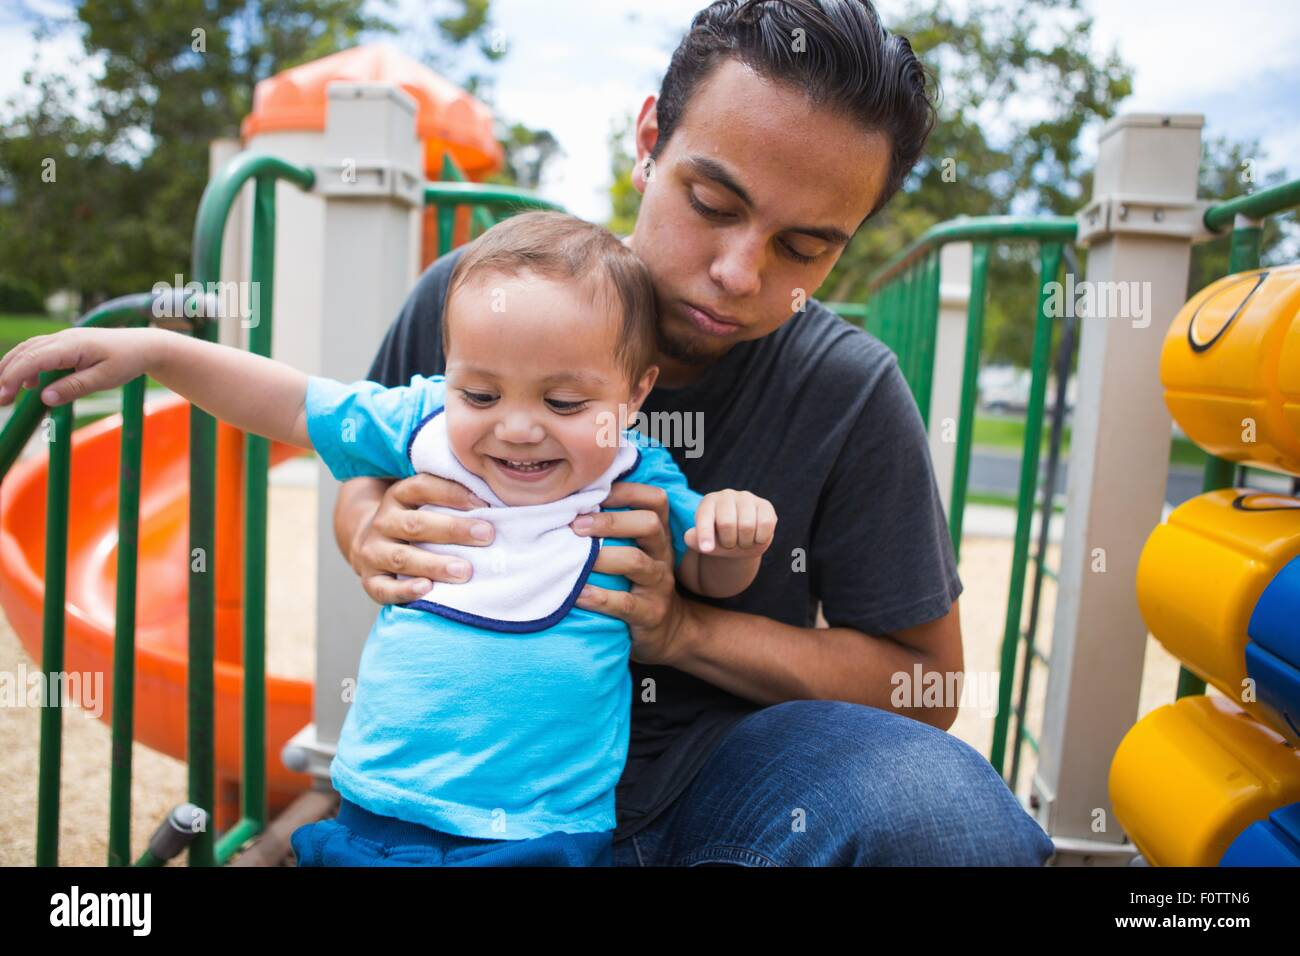 Young man guiding toddler brother on playground slide - Stock Image